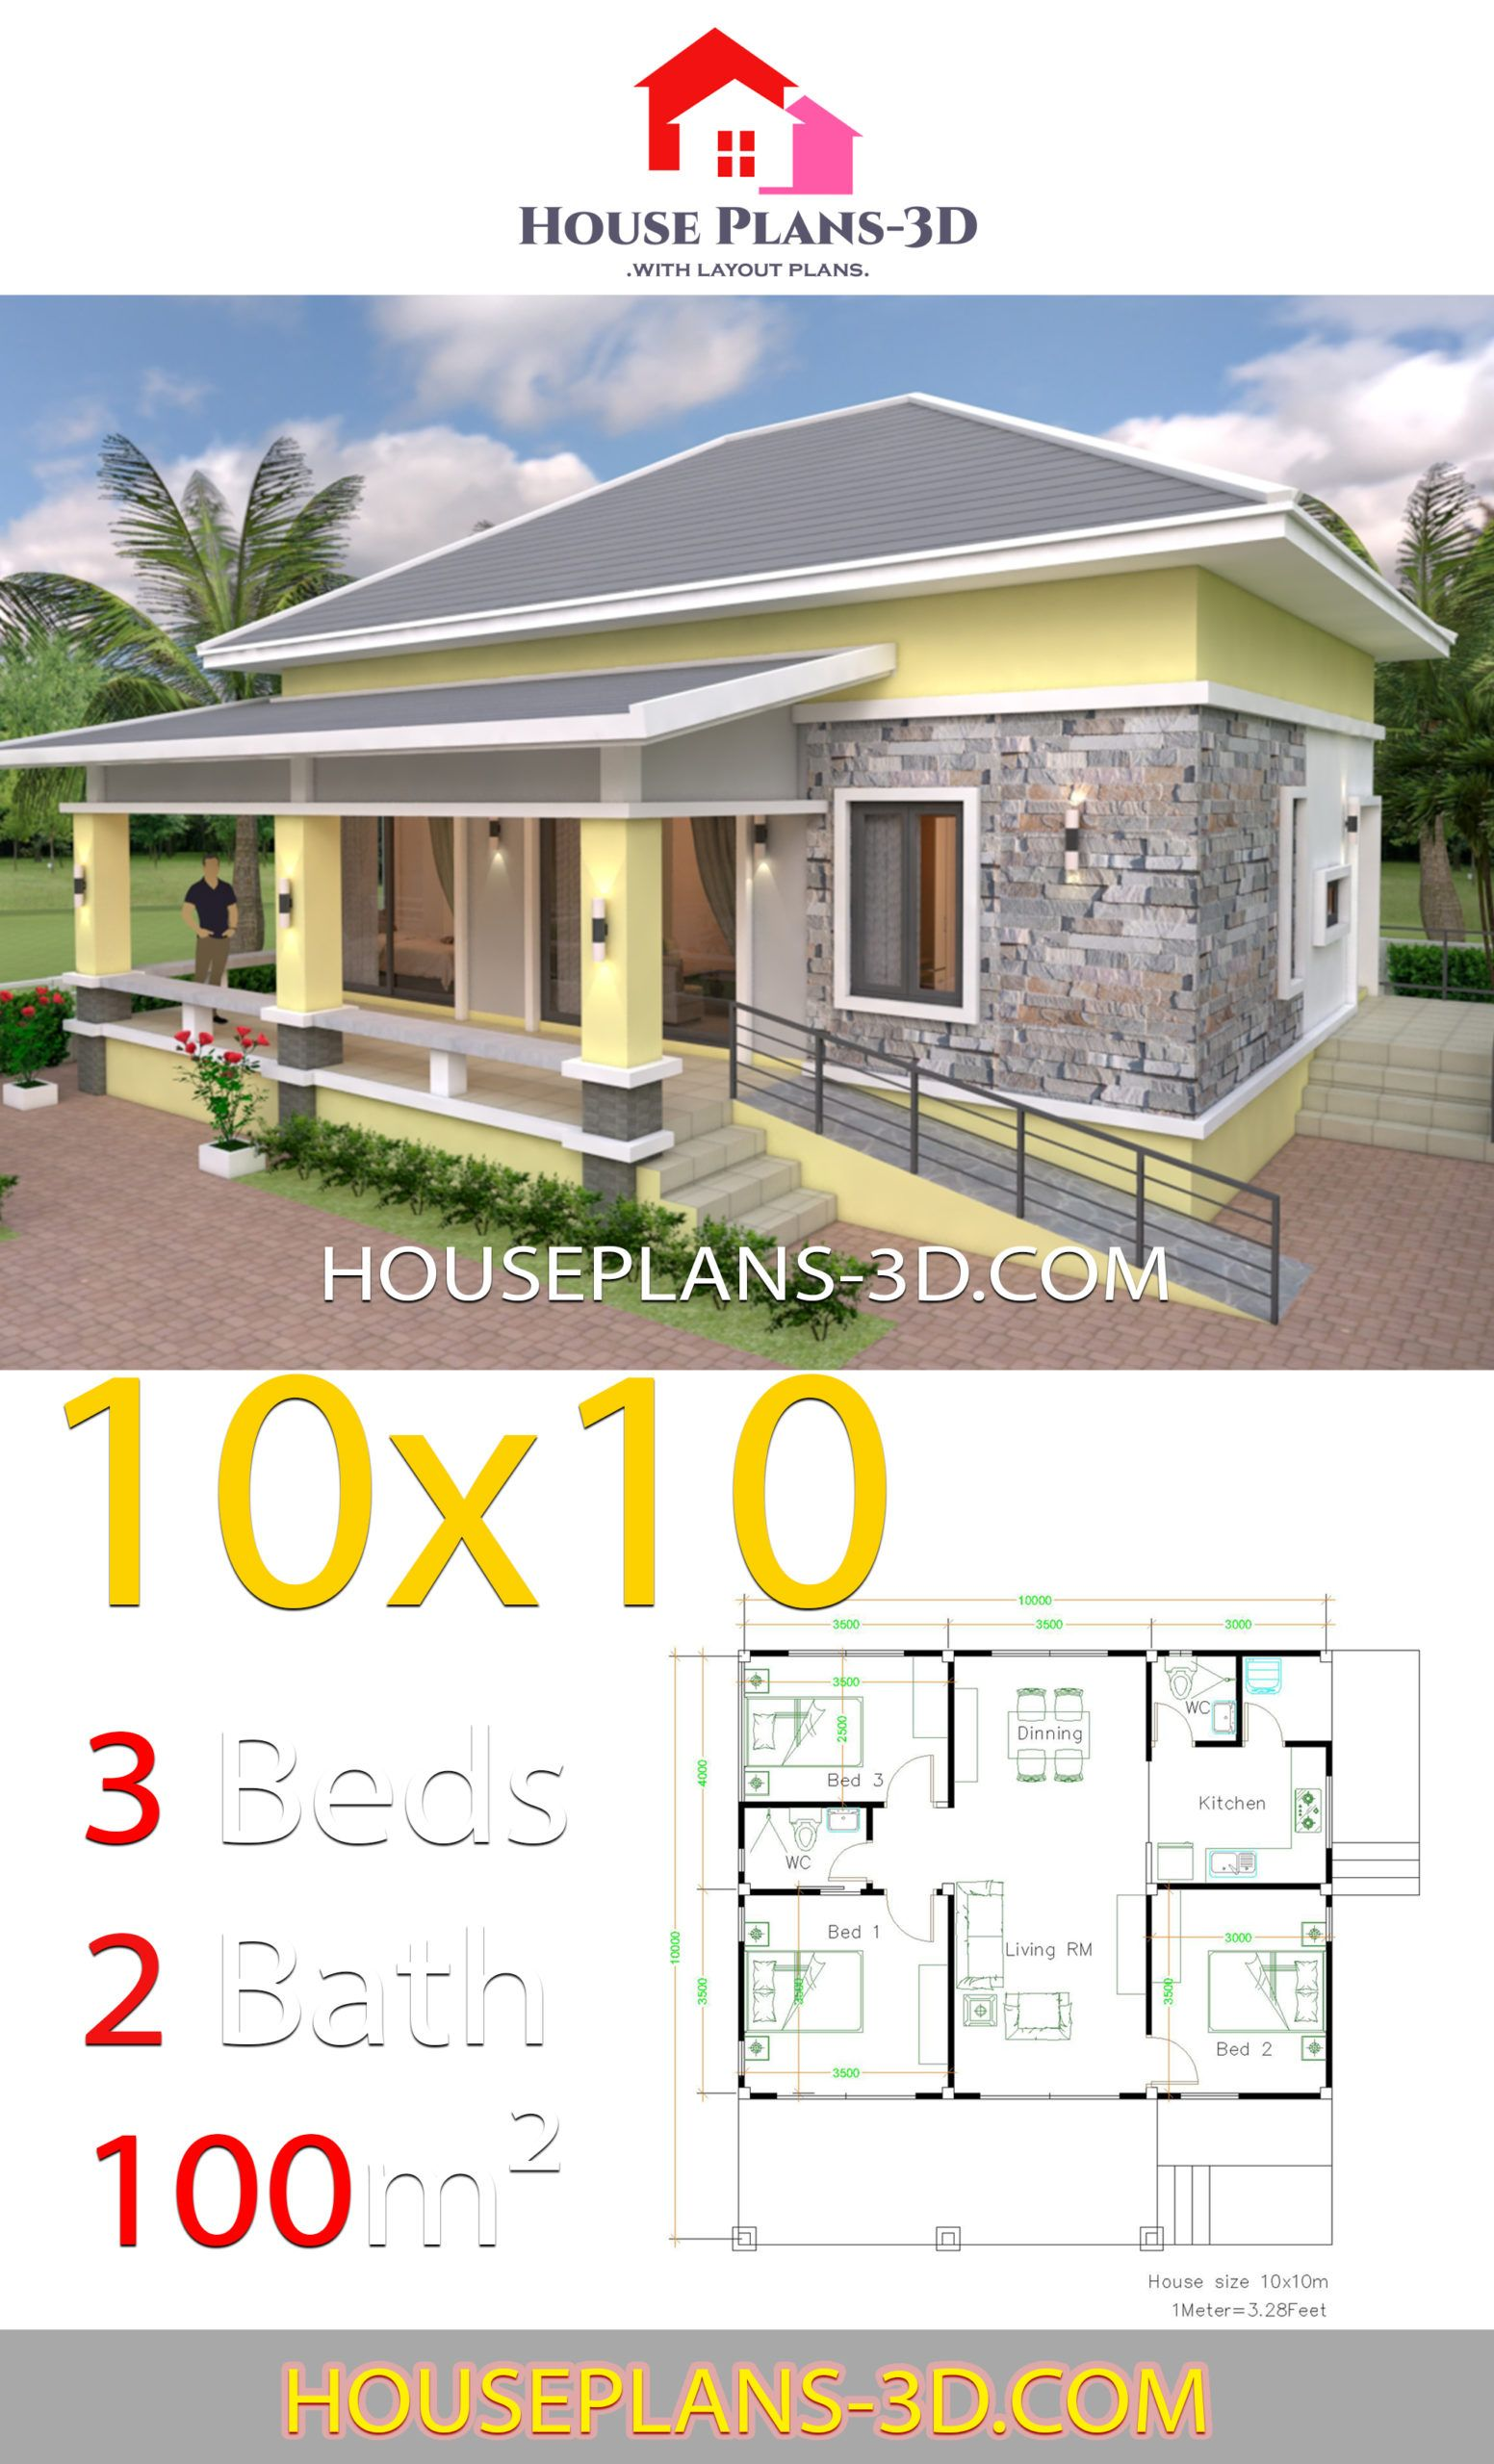 House Design 10x10 With 3 Bedrooms Hip Roof House Plans 3d In 2020 House Plans Bungalow Style House Plans Bungalow House Design